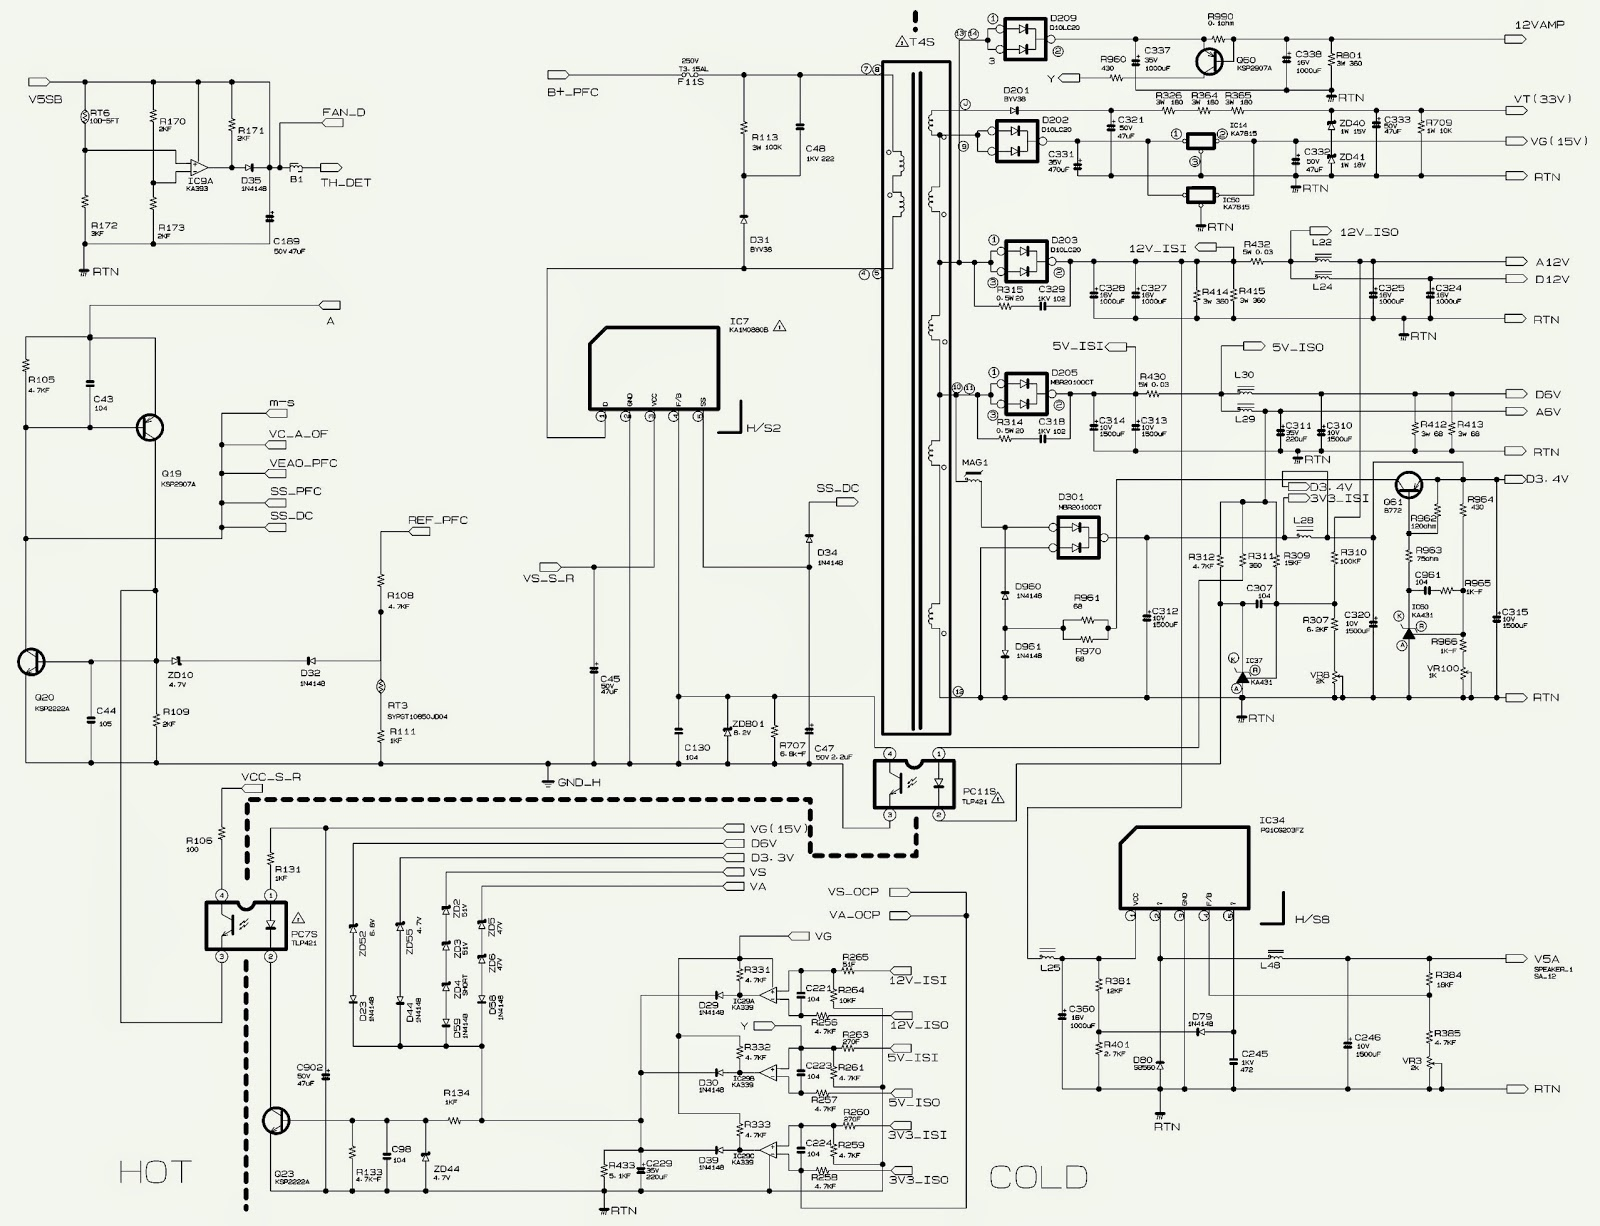 Diagramme De Samsung On5 Schematic Diagram Version Complte Qualit Hd Schematic Diagram